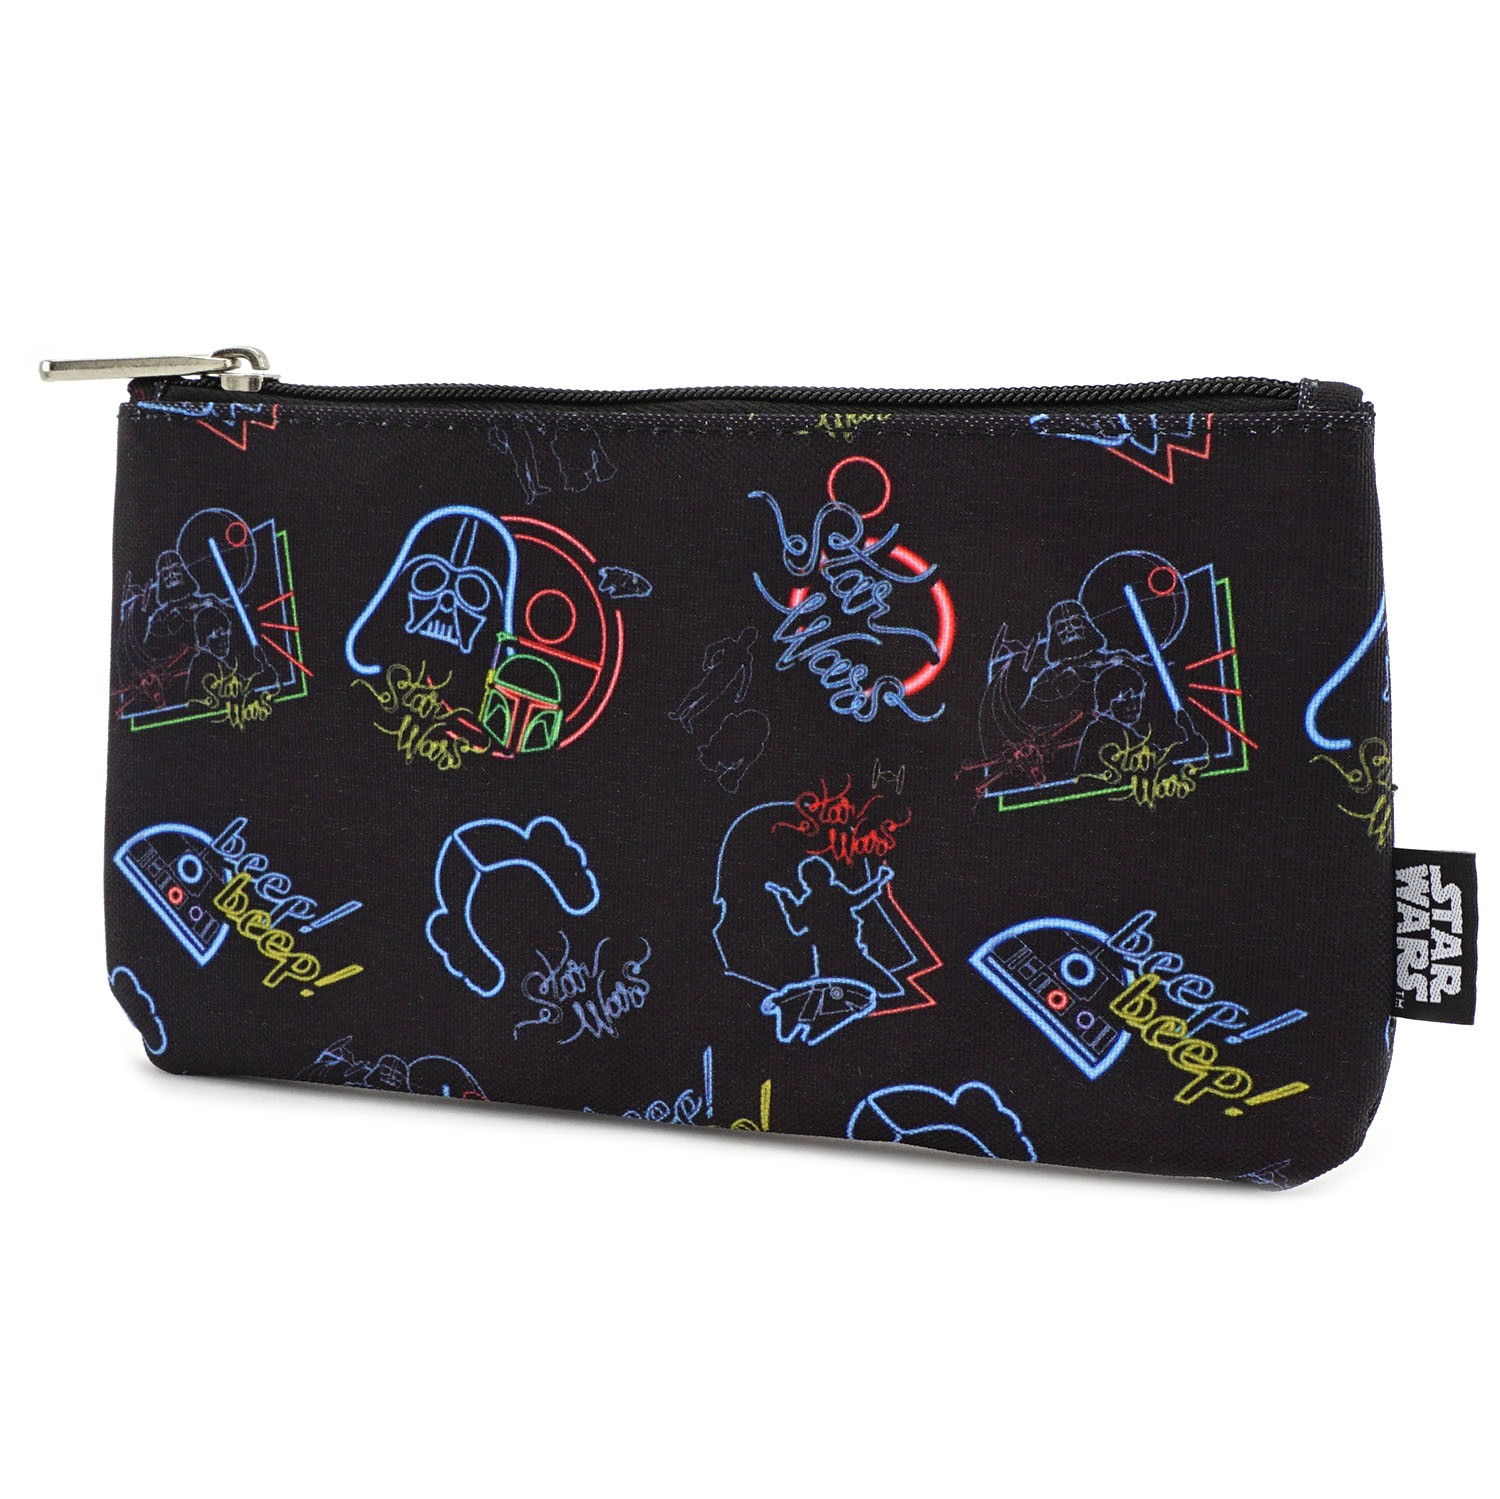 Loungefly x Star Wars Neon Print Coin Purse